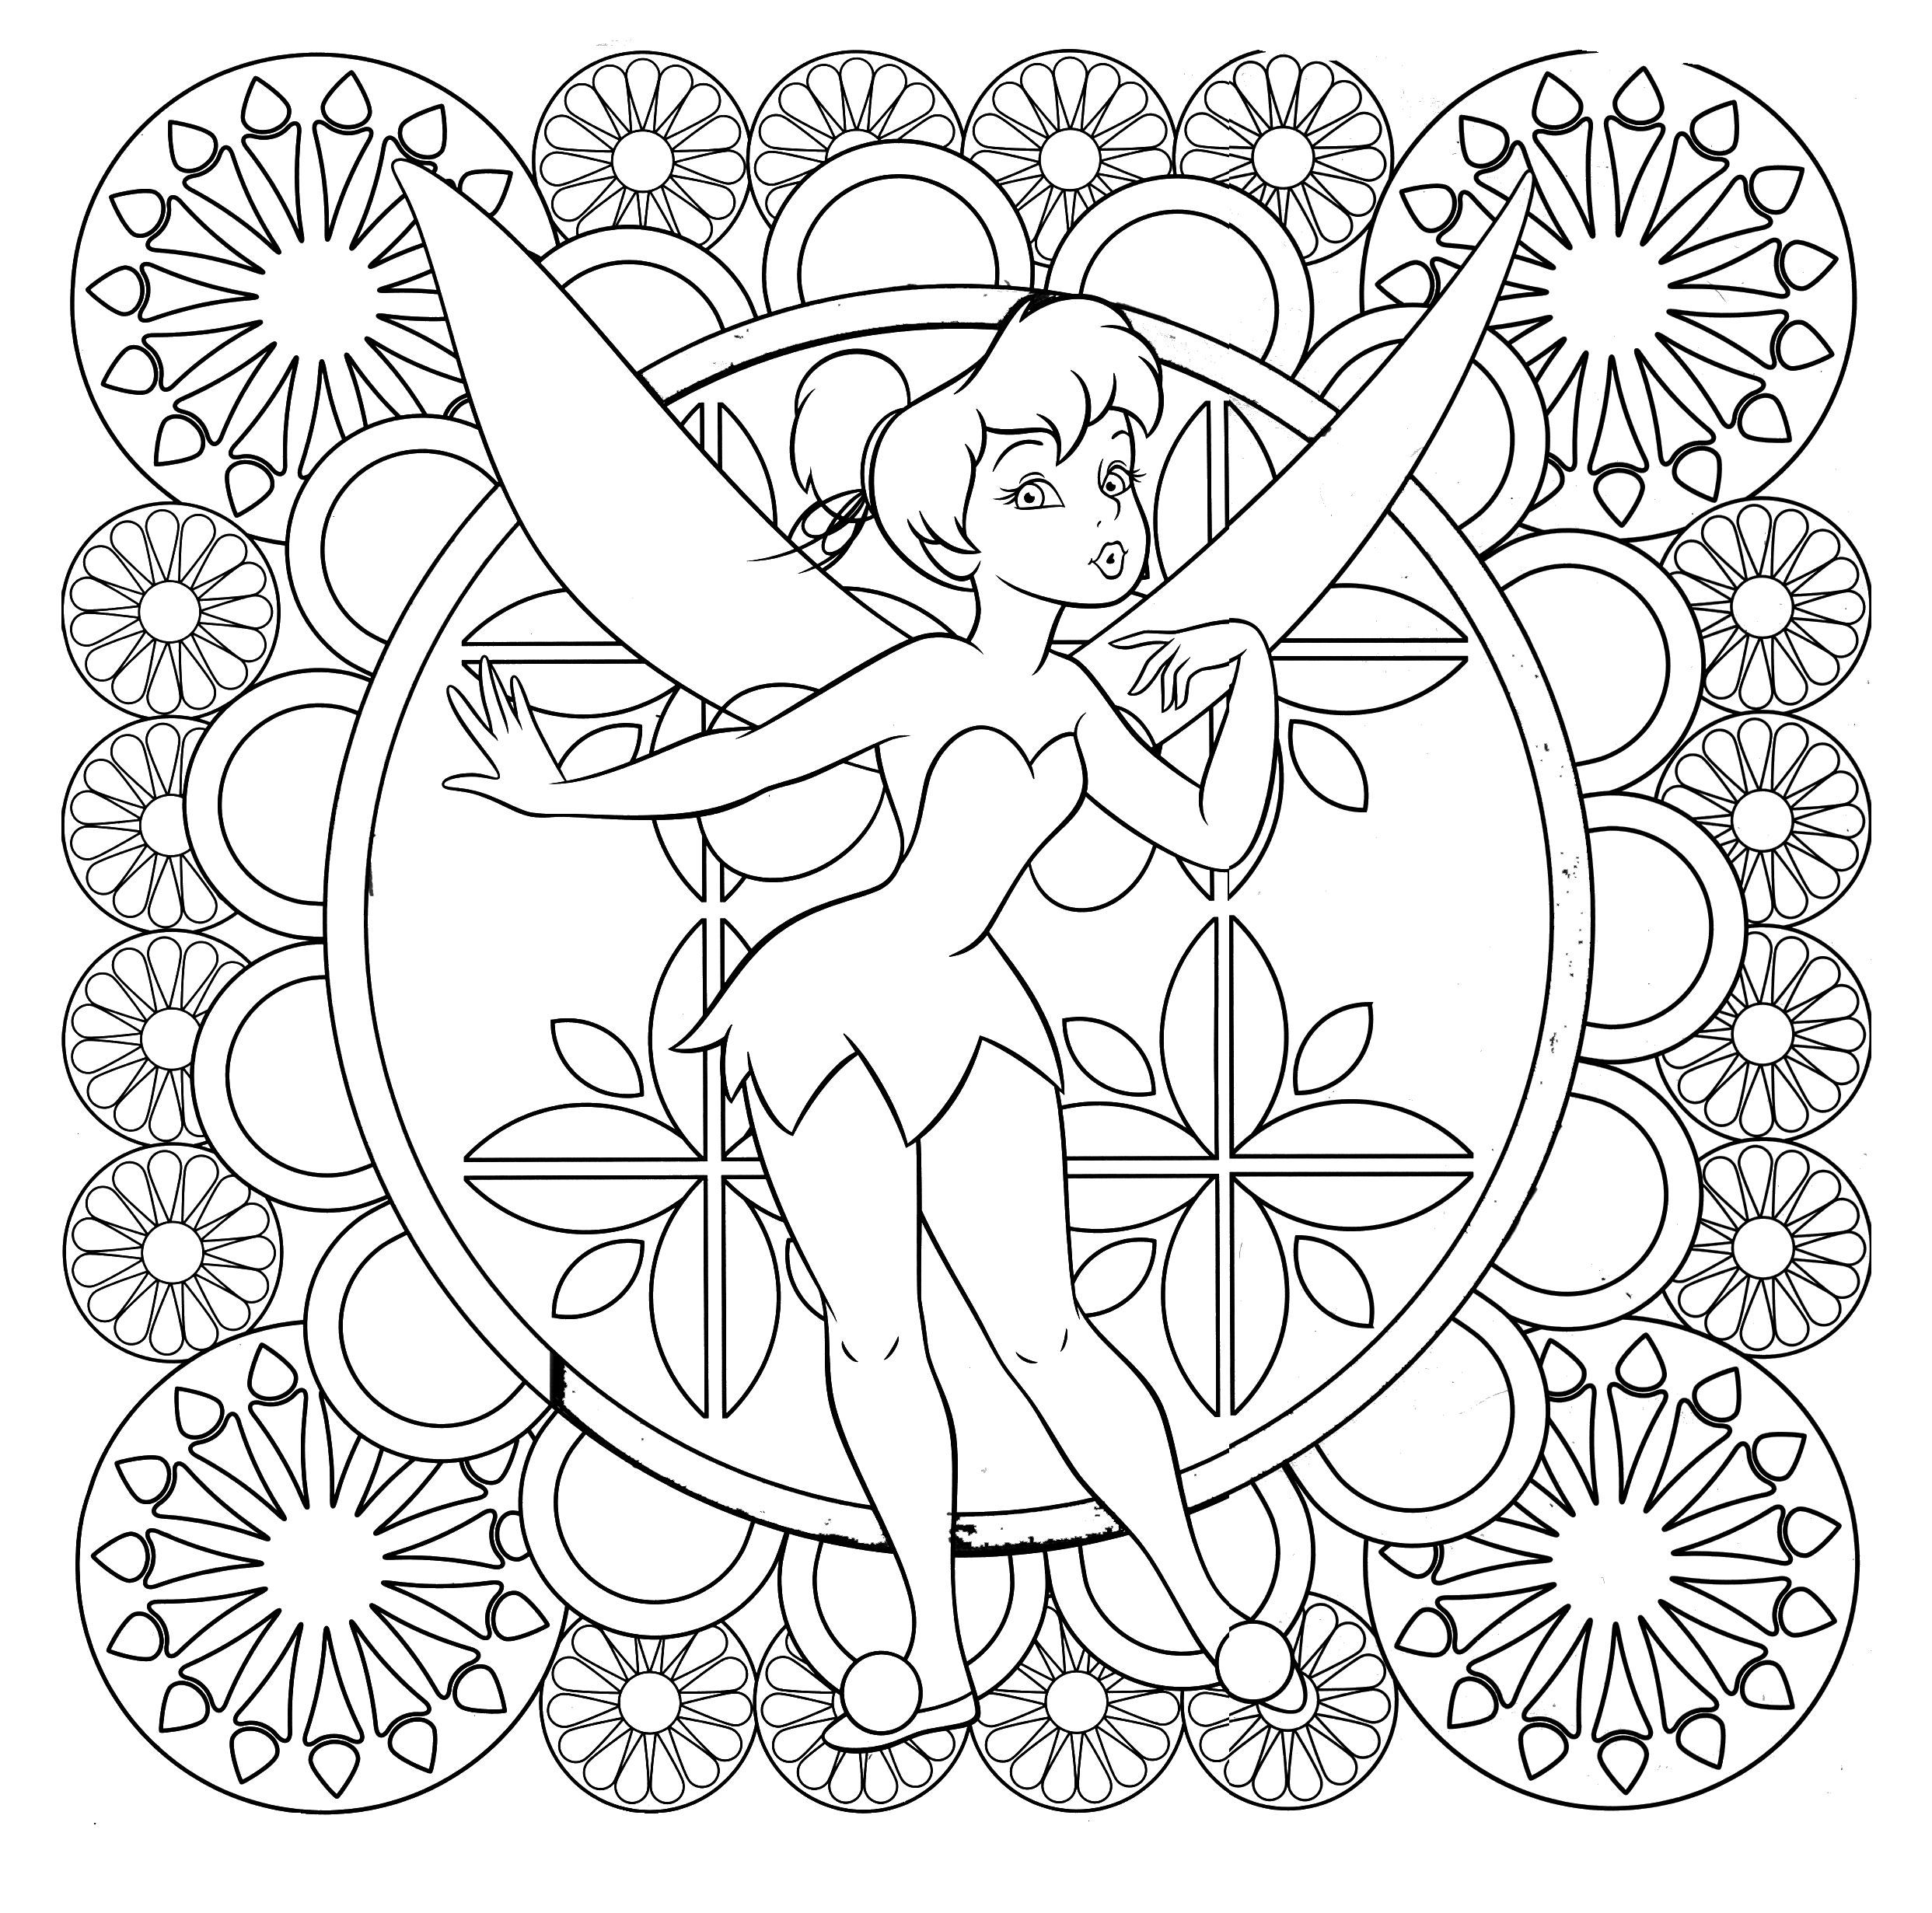 Tinkerbell Difficult Coloring Page   Disney coloring pages ...   colouring pages for adults disney